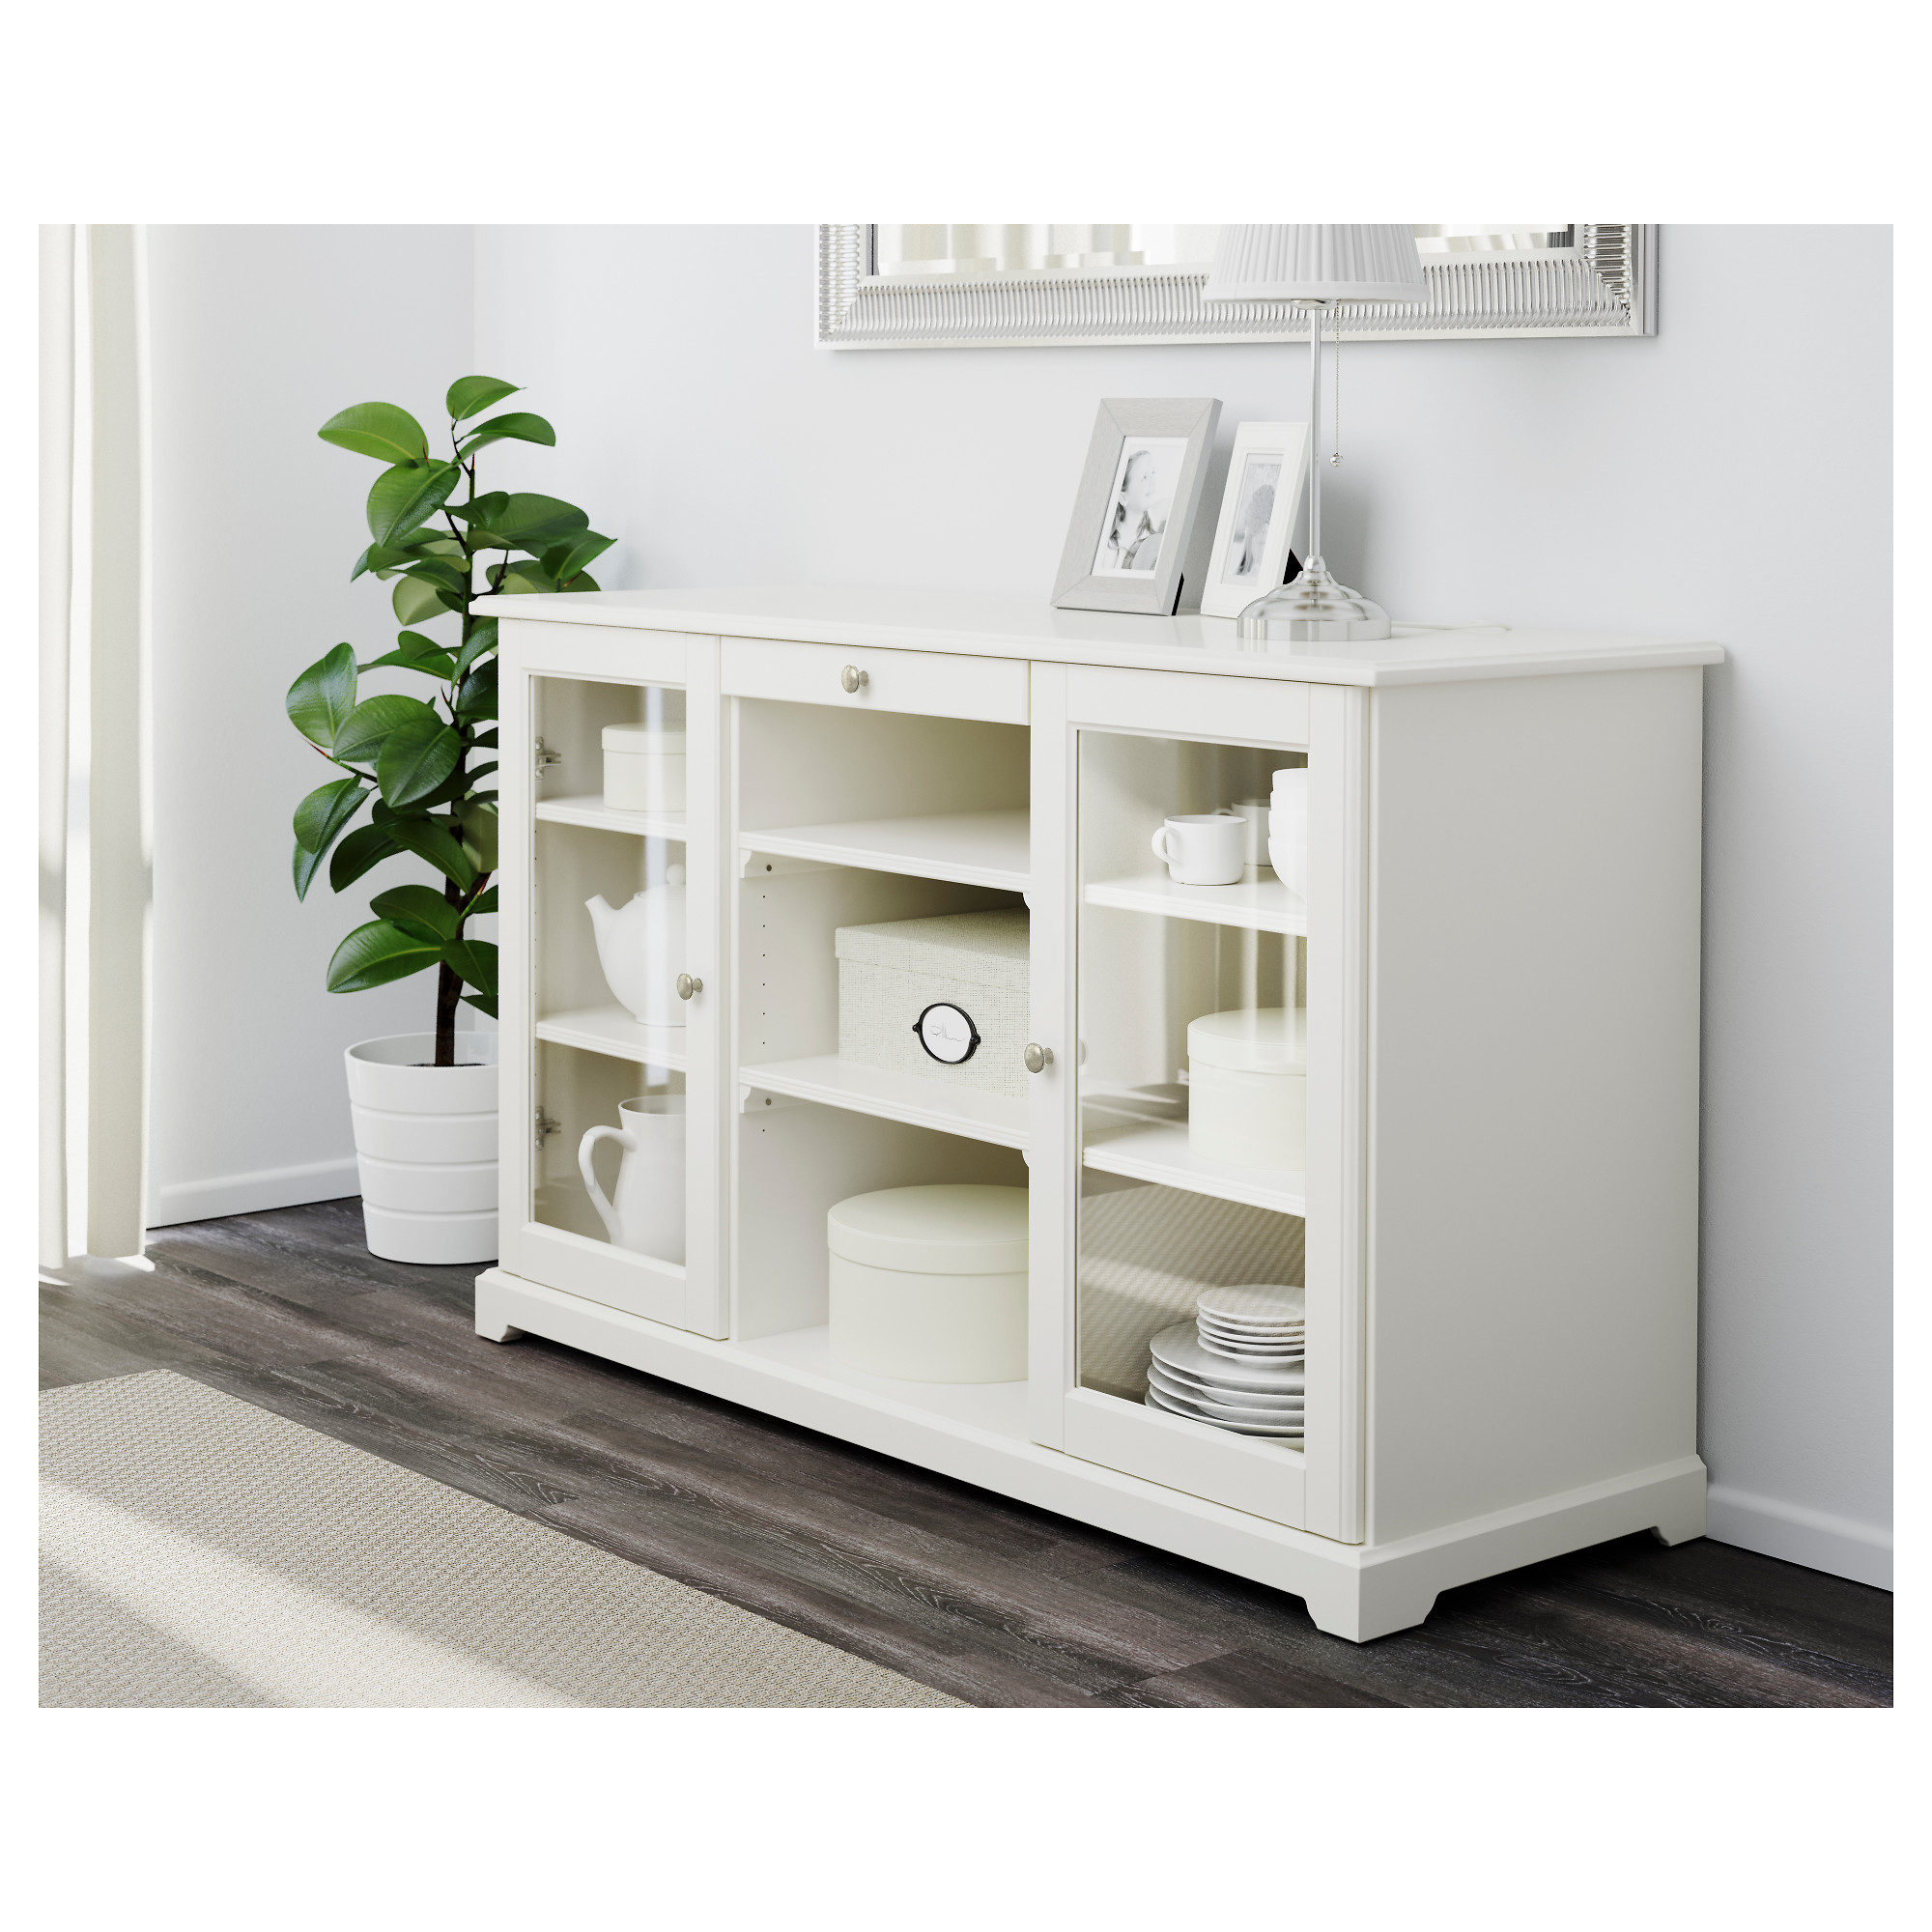 Contemporary white sideboard liatorp sideboard - white - ikea hecftsr